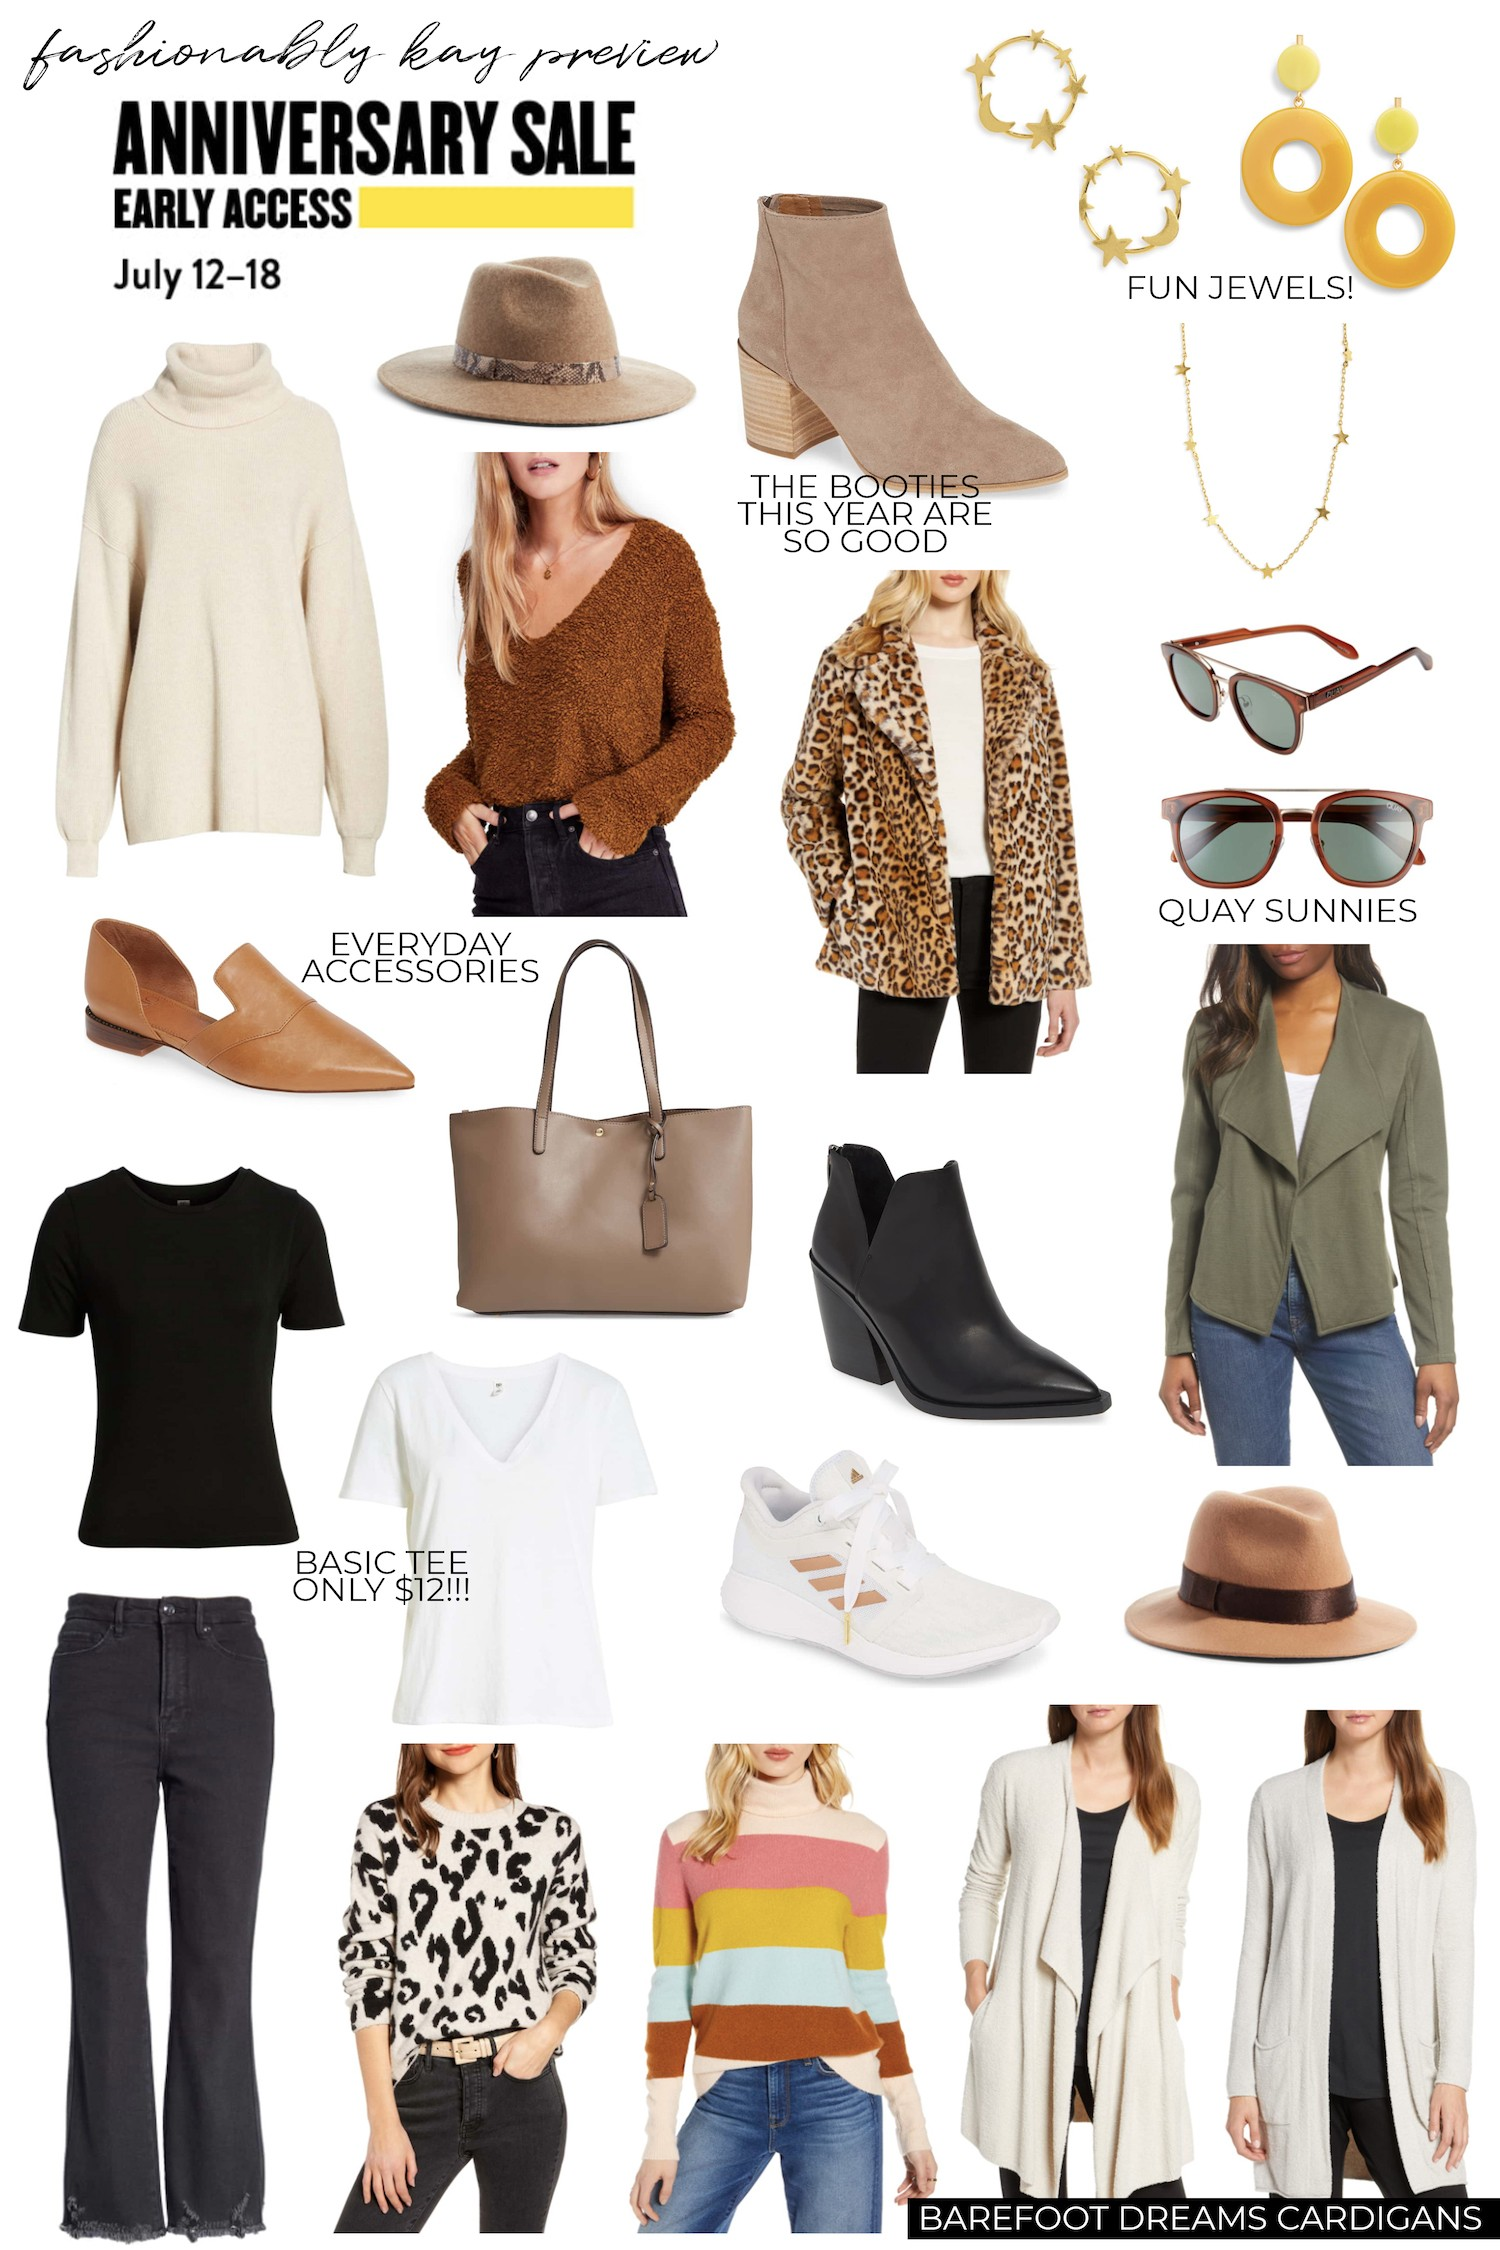 9050660d6 Nordstrom Anniversary Sale 2019 Favorites Preview!! – Fashionably Kay